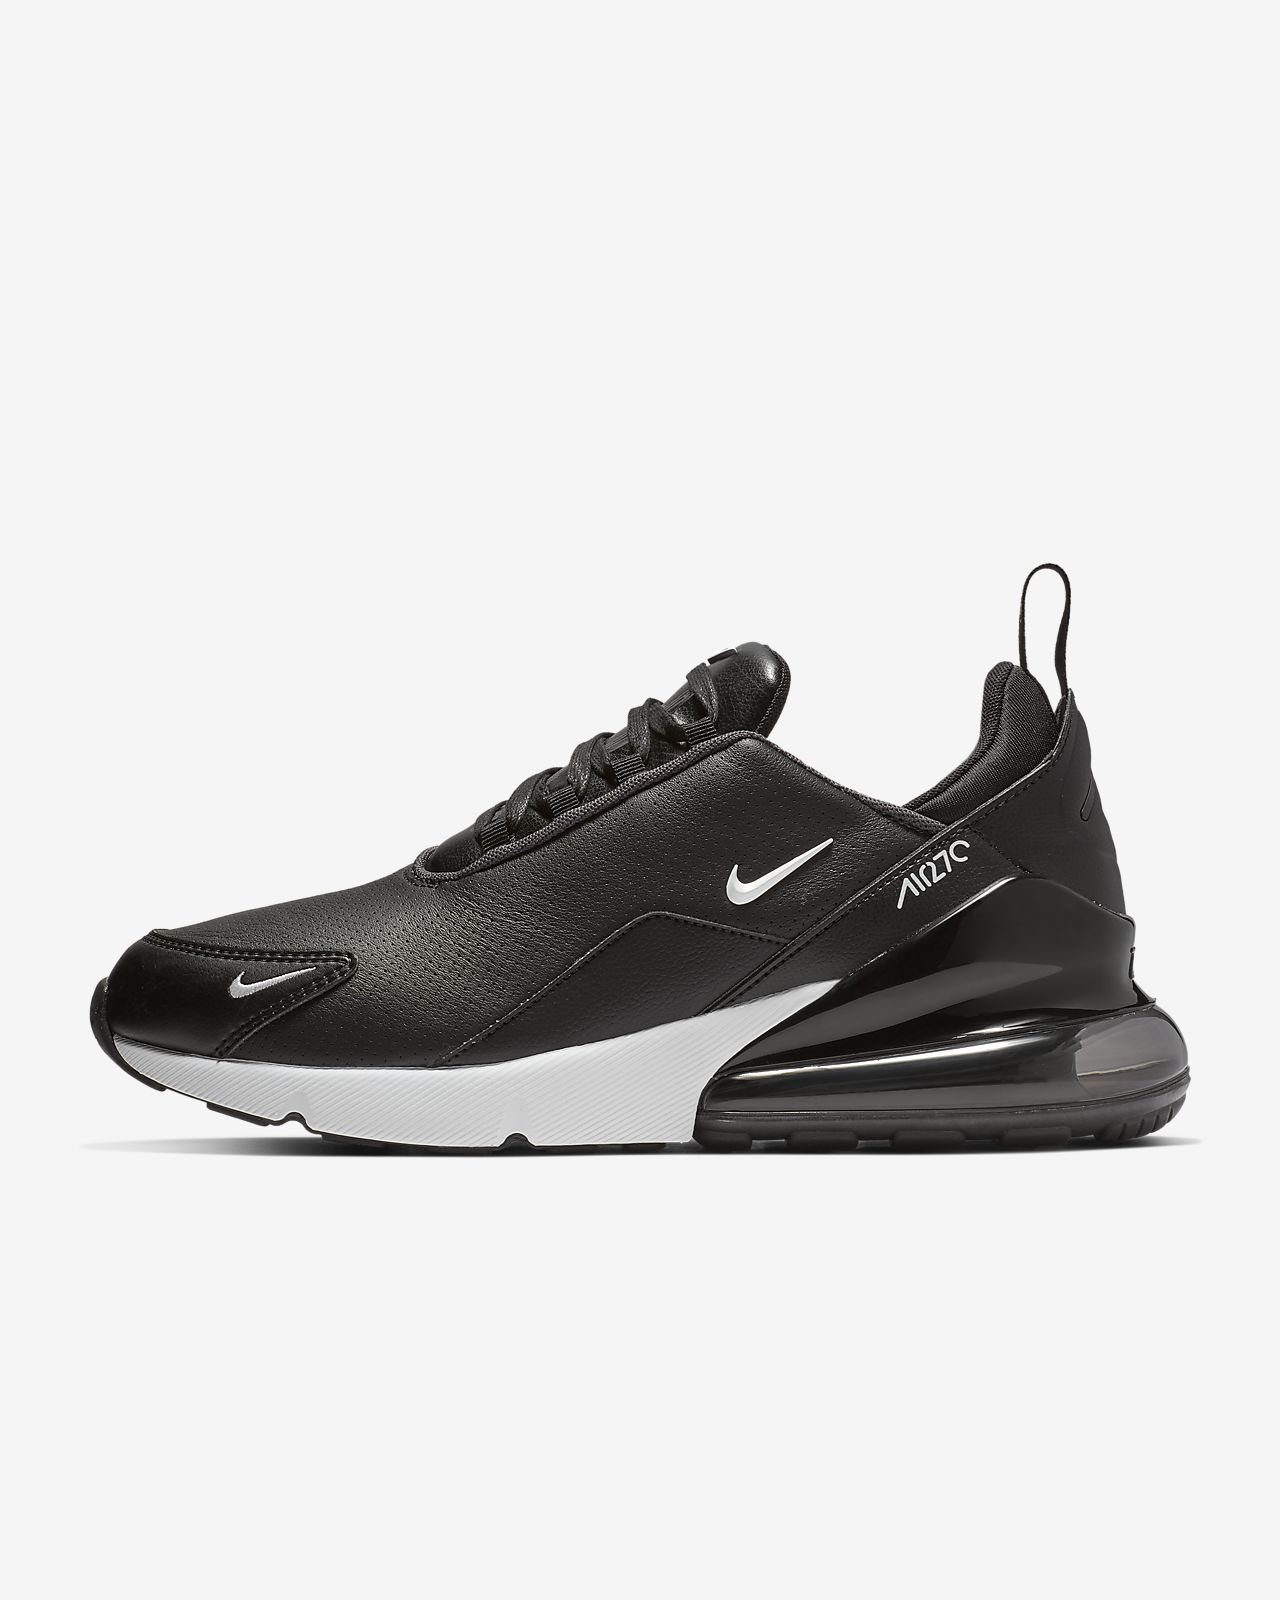 new arrivals 94b62 12ec1 ... Nike Air Max 270 Premium Men s Shoe